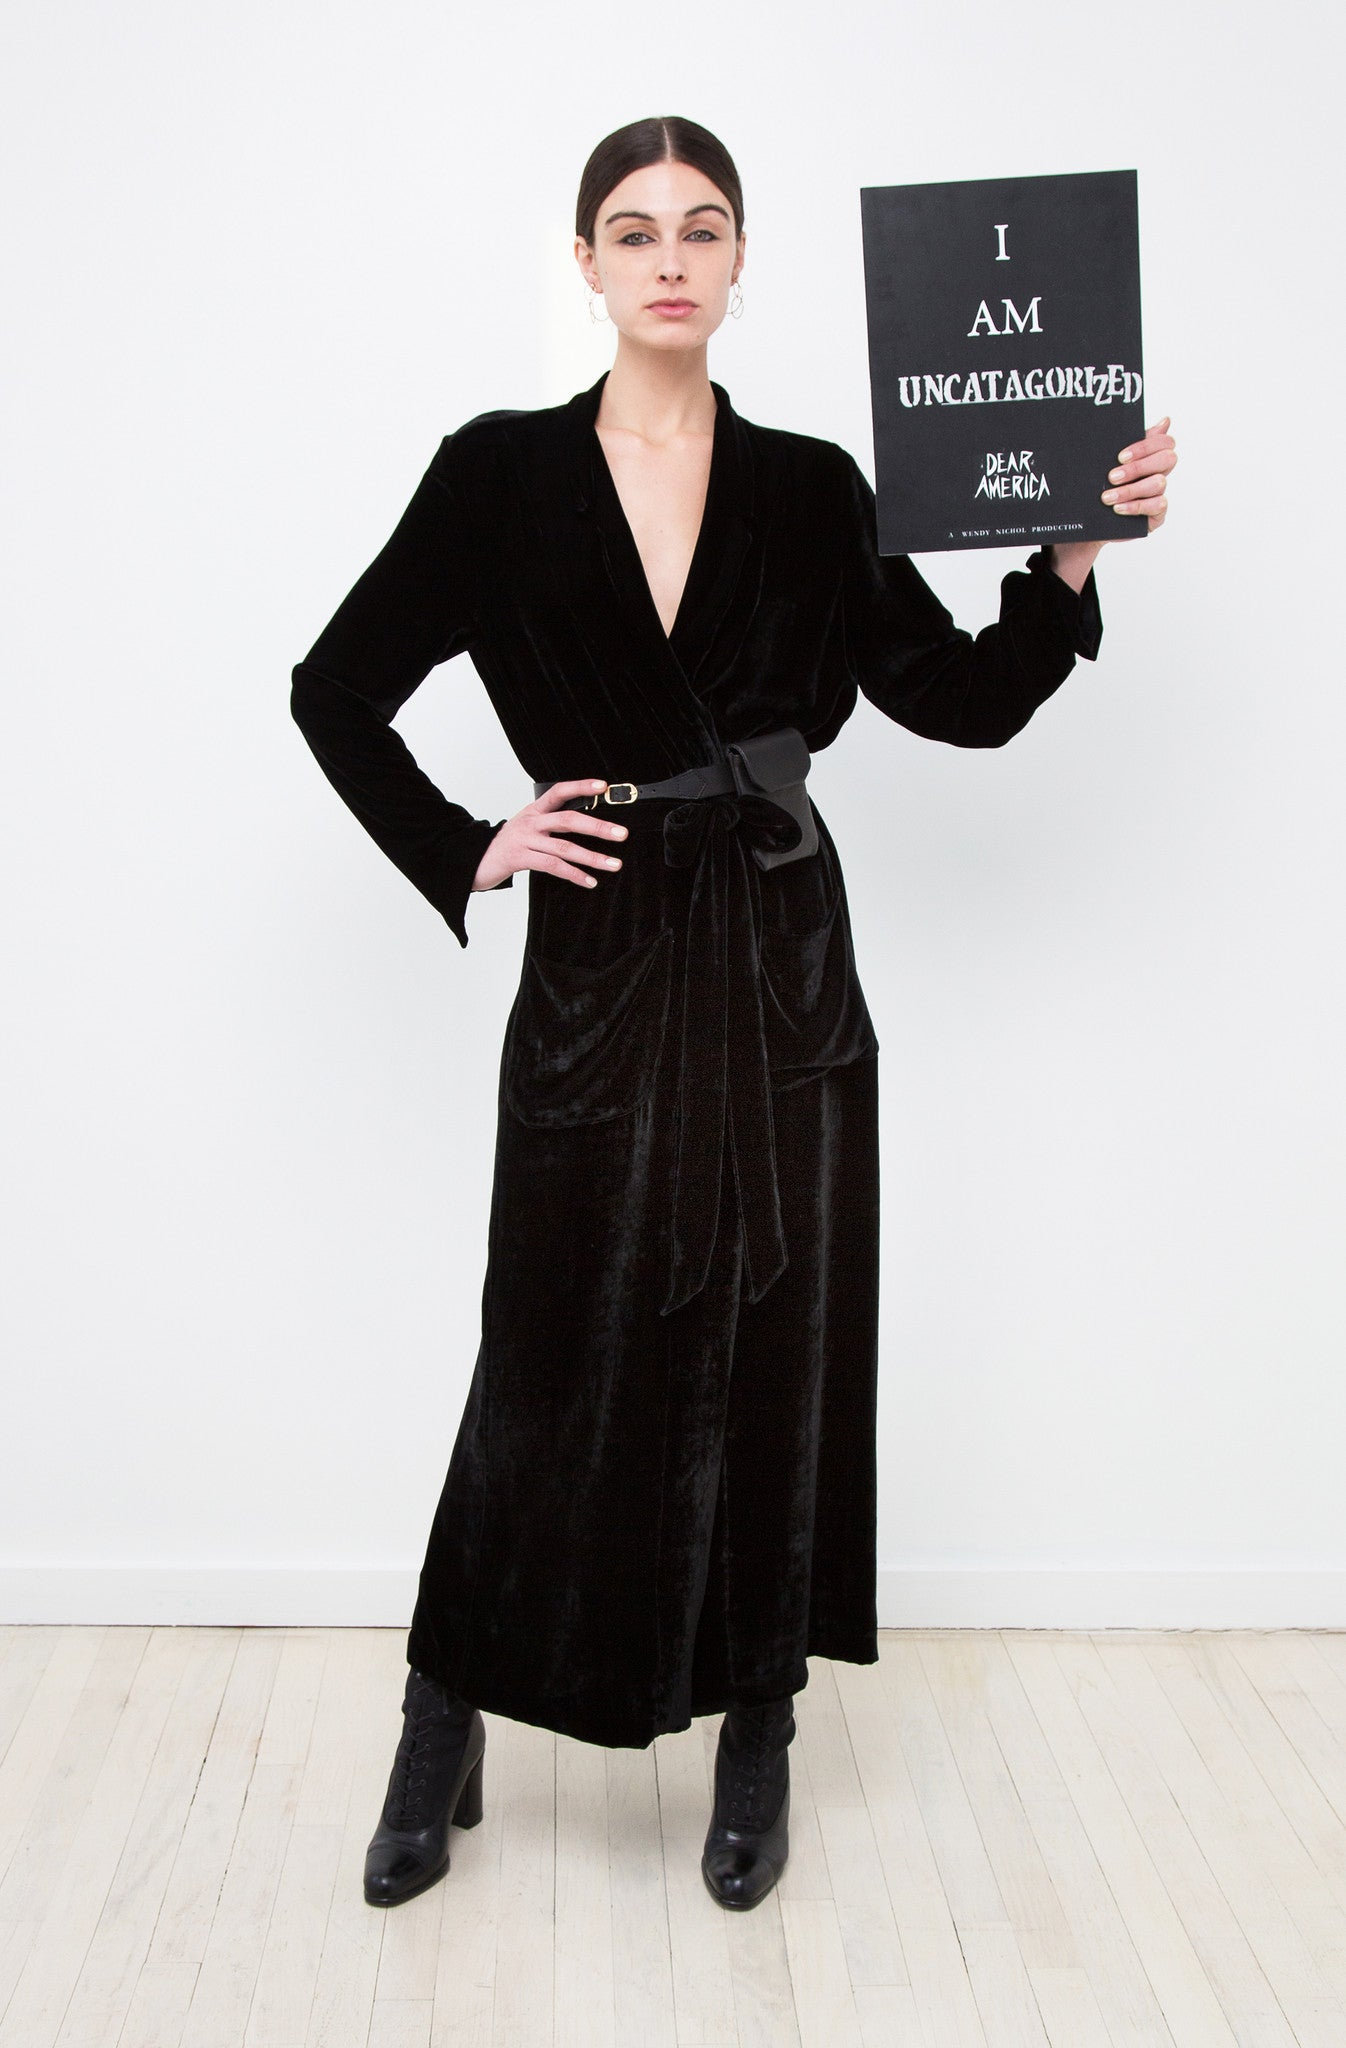 Mariah Strongin IMG Model Wendy Nichol AW17 Clothing Fashion Anti Fascist Runway Show Dear America Handmade in NYC New York City Protest March I AM Black Silk Velvet Long Duster Robe Jacket Coat large pockets